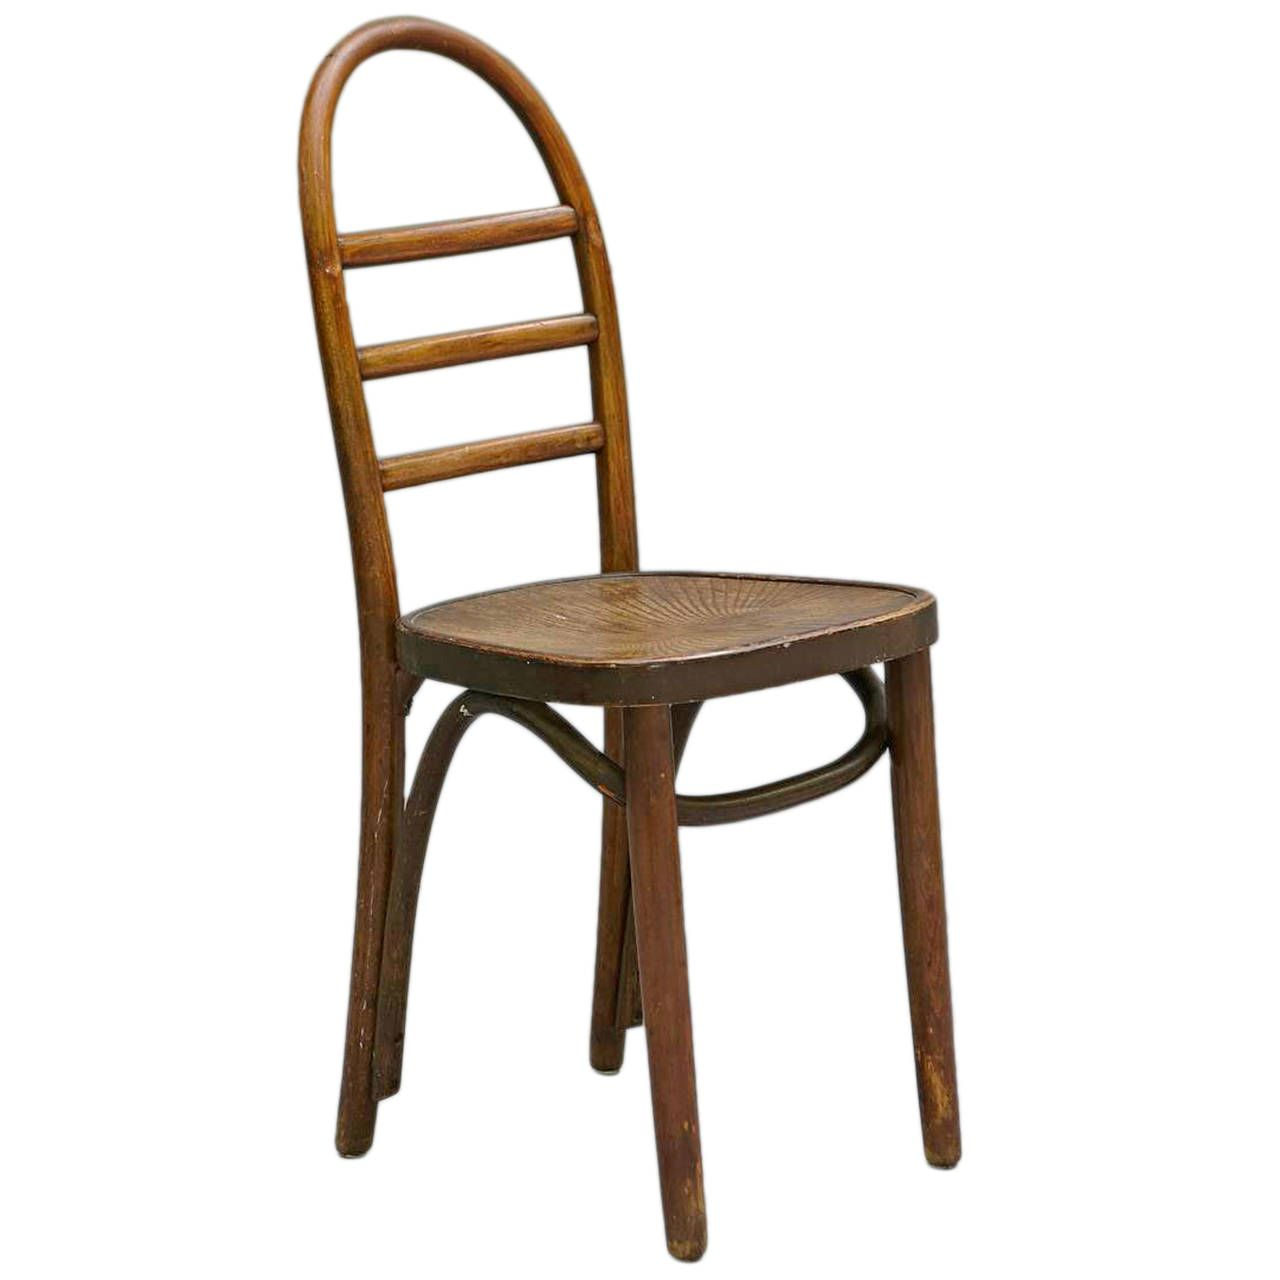 Thonet Bentwood Ladder Back Chair